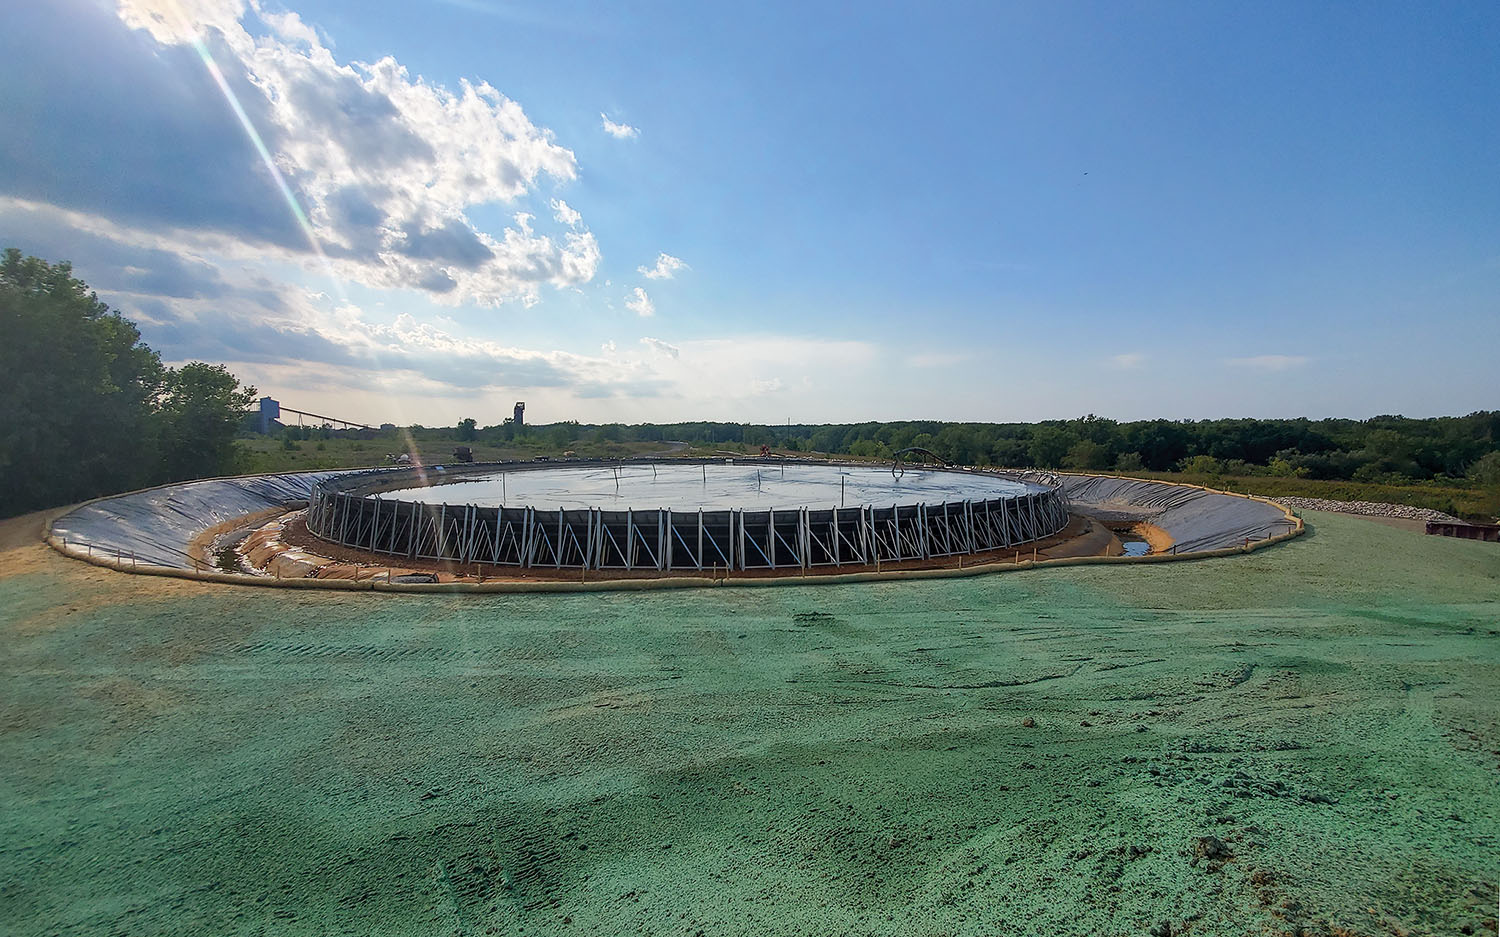 The Lorain Geopool is designed to hold 5,000 cubic yards of material. (Photo by Corry Platt, Coldwater Consulting LLC)